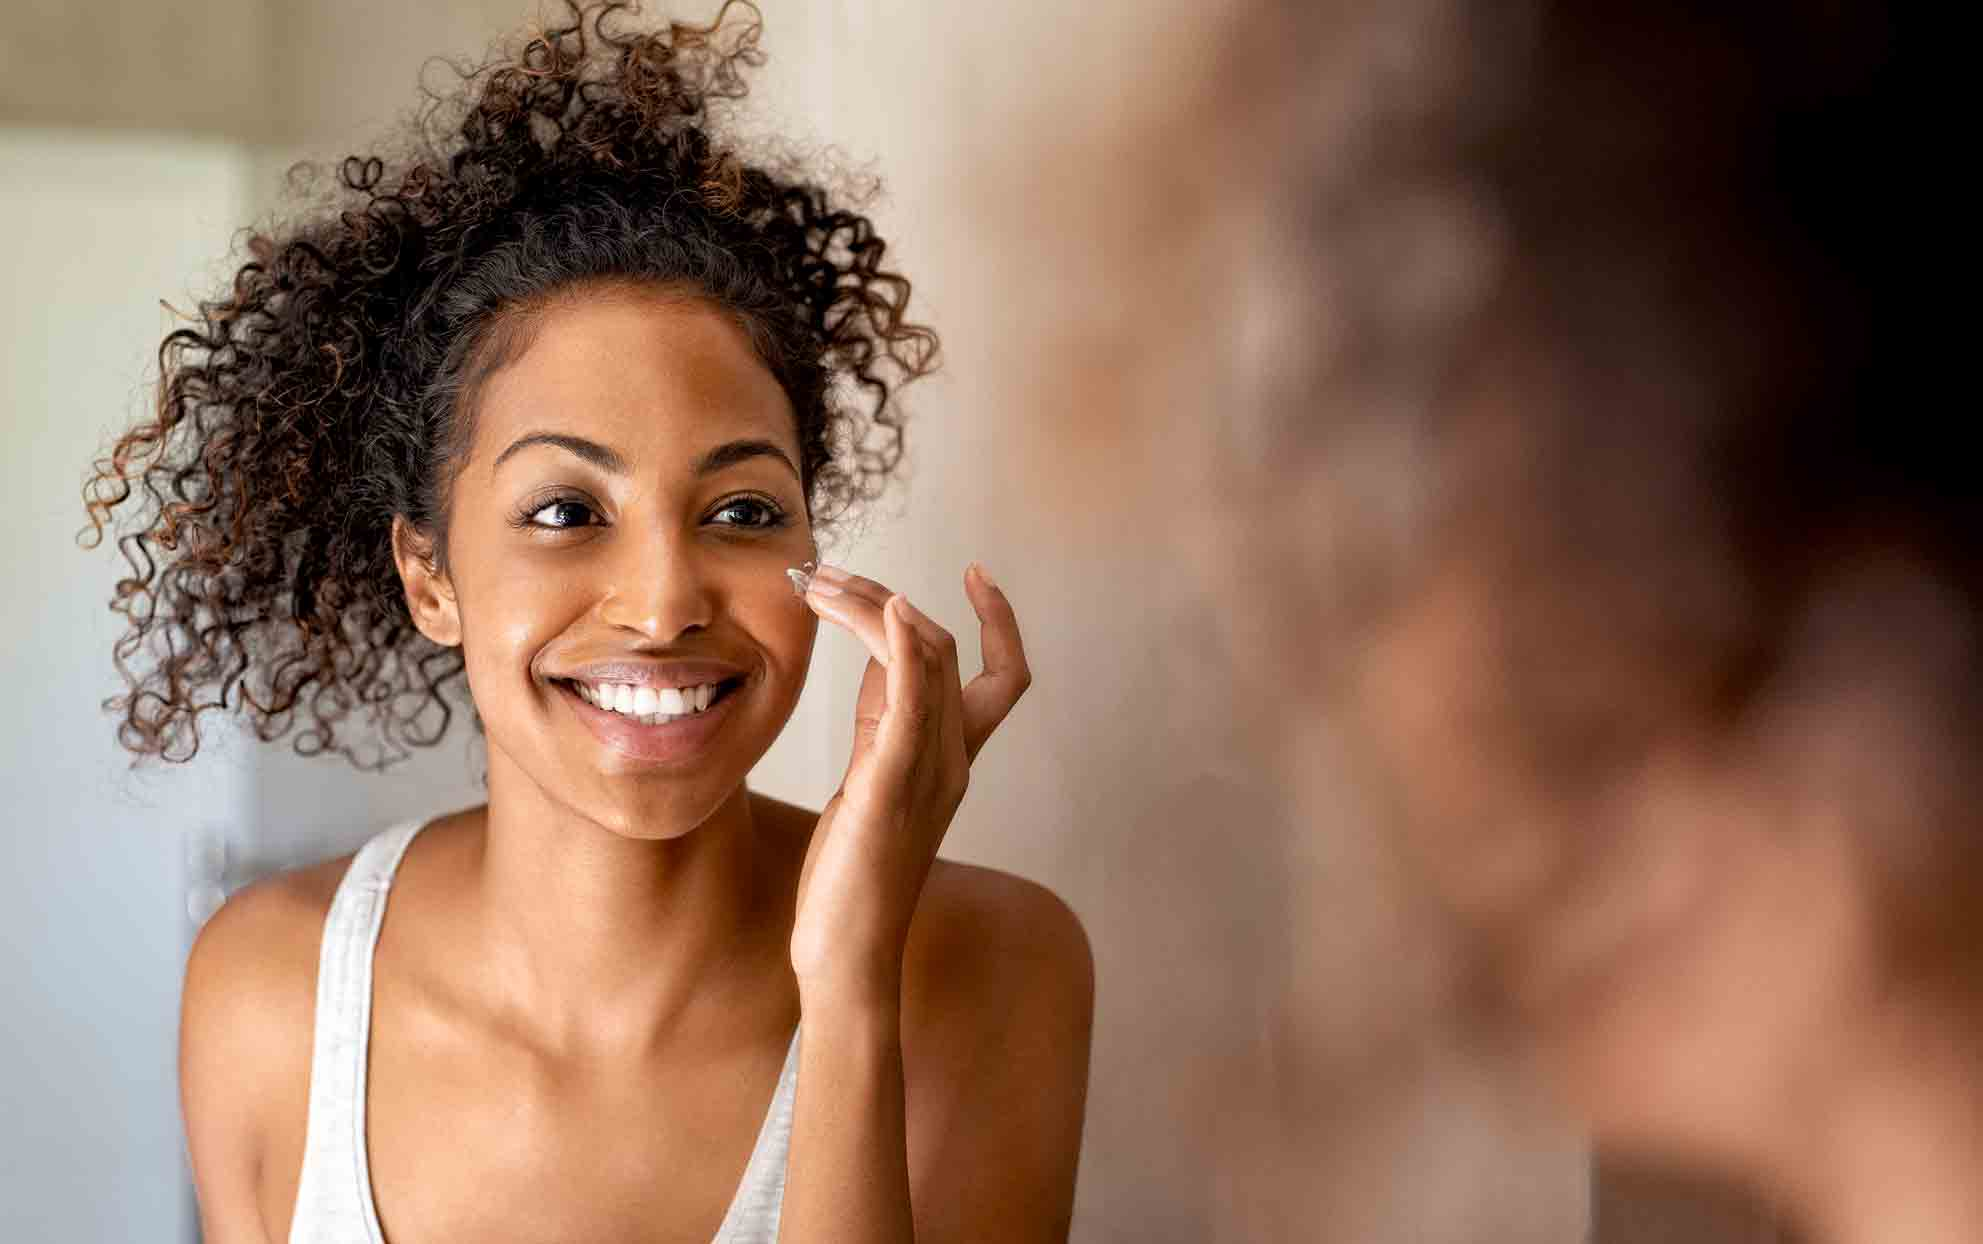 African American woman applying face moisturizer in the mirror